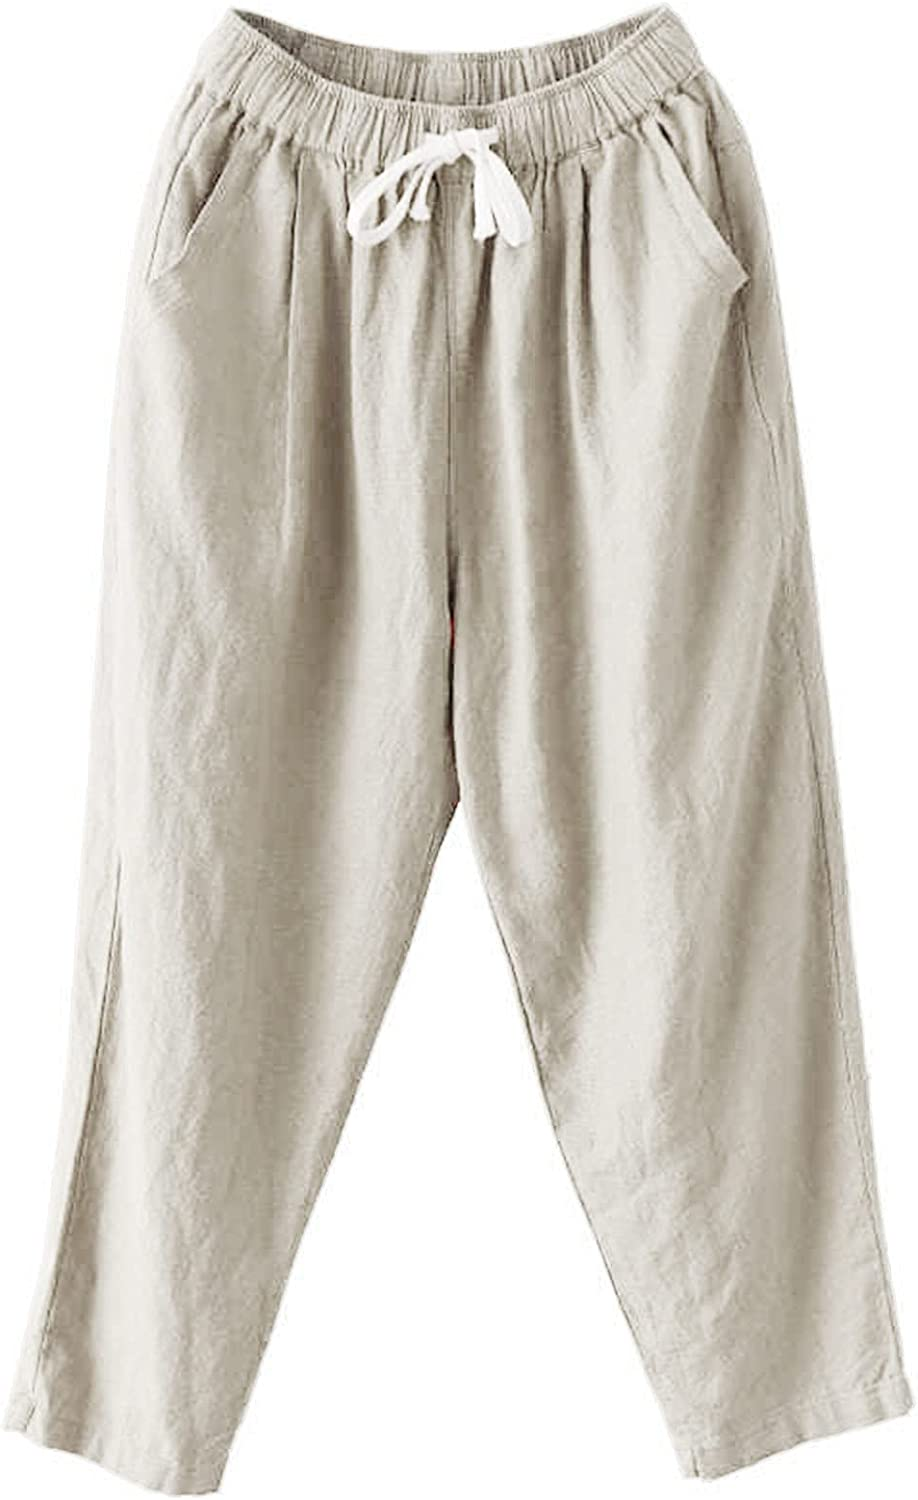 Meengg Womens Casual Cotton Linen free lowest price shipping Harem Waist Cropped Pants High